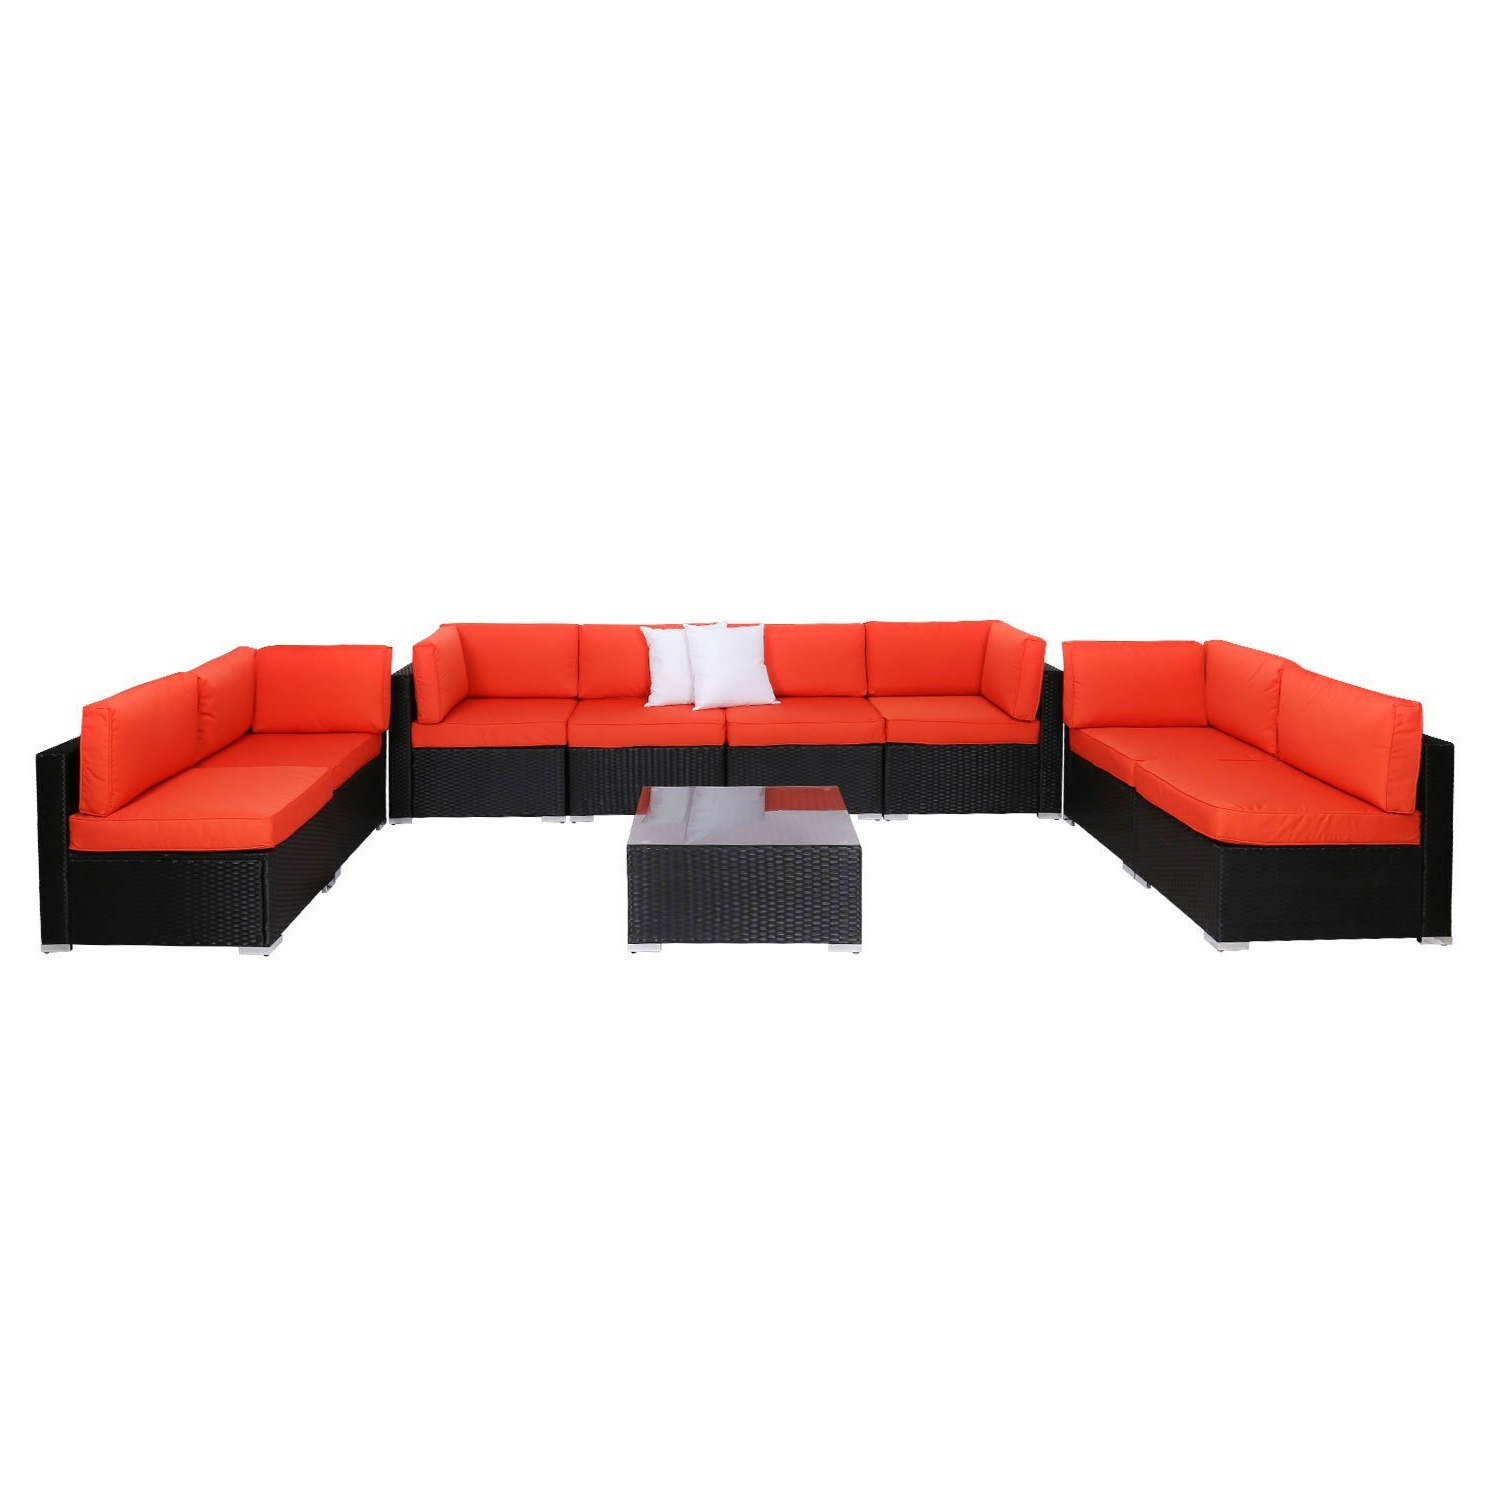 Delano 2 Piece Sectionals With Laf Oversized Chaise Regarding Most Popular Cheap Ashley Furniture Sectional Sofas, Find Ashley Furniture (View 17 of 20)